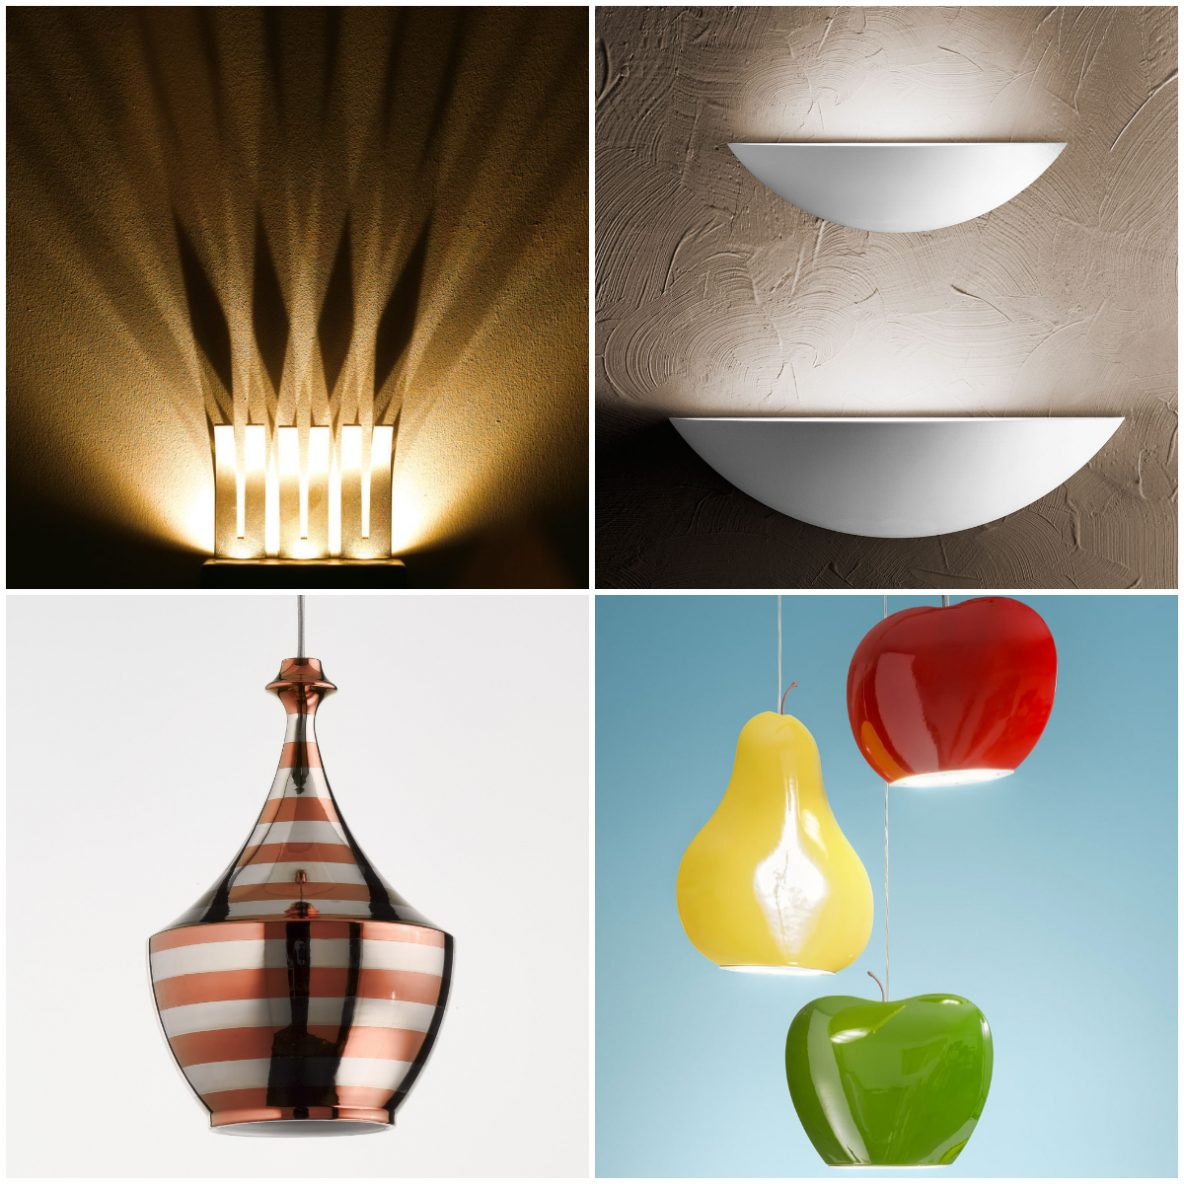 Aldo Bernardi - Lighting Design srl